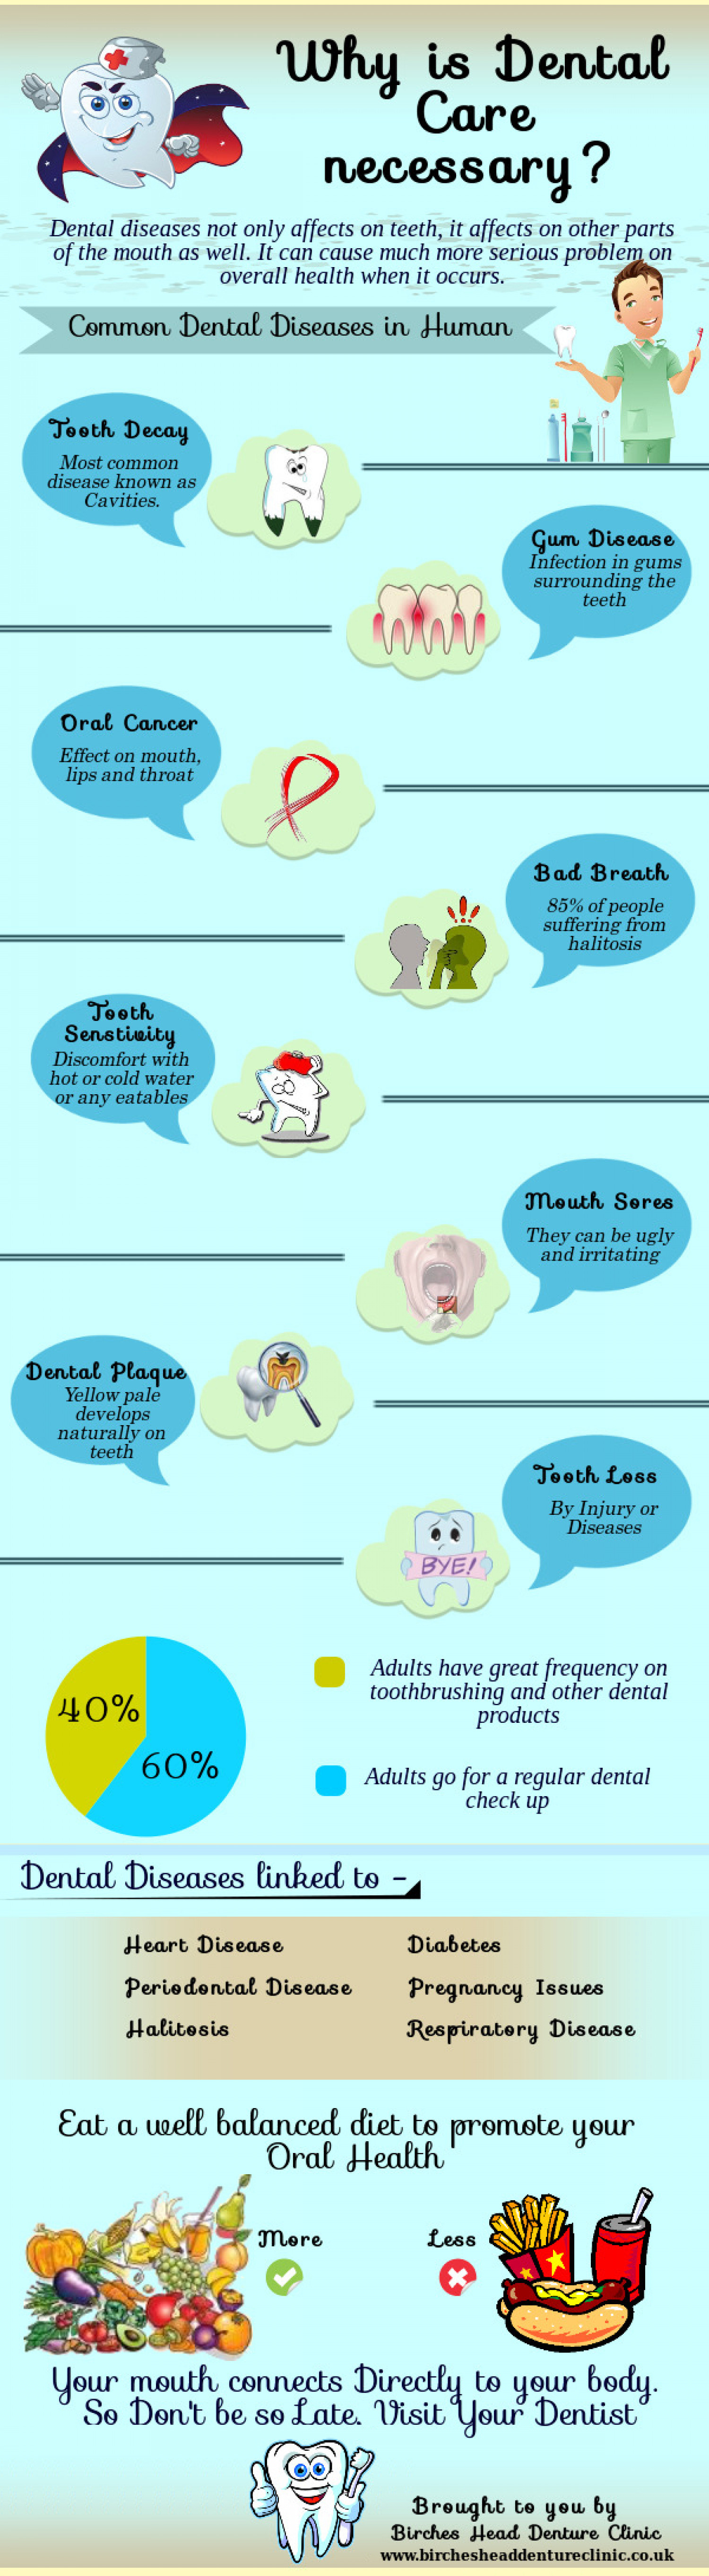 Common Dental Diseases in Human Infographic